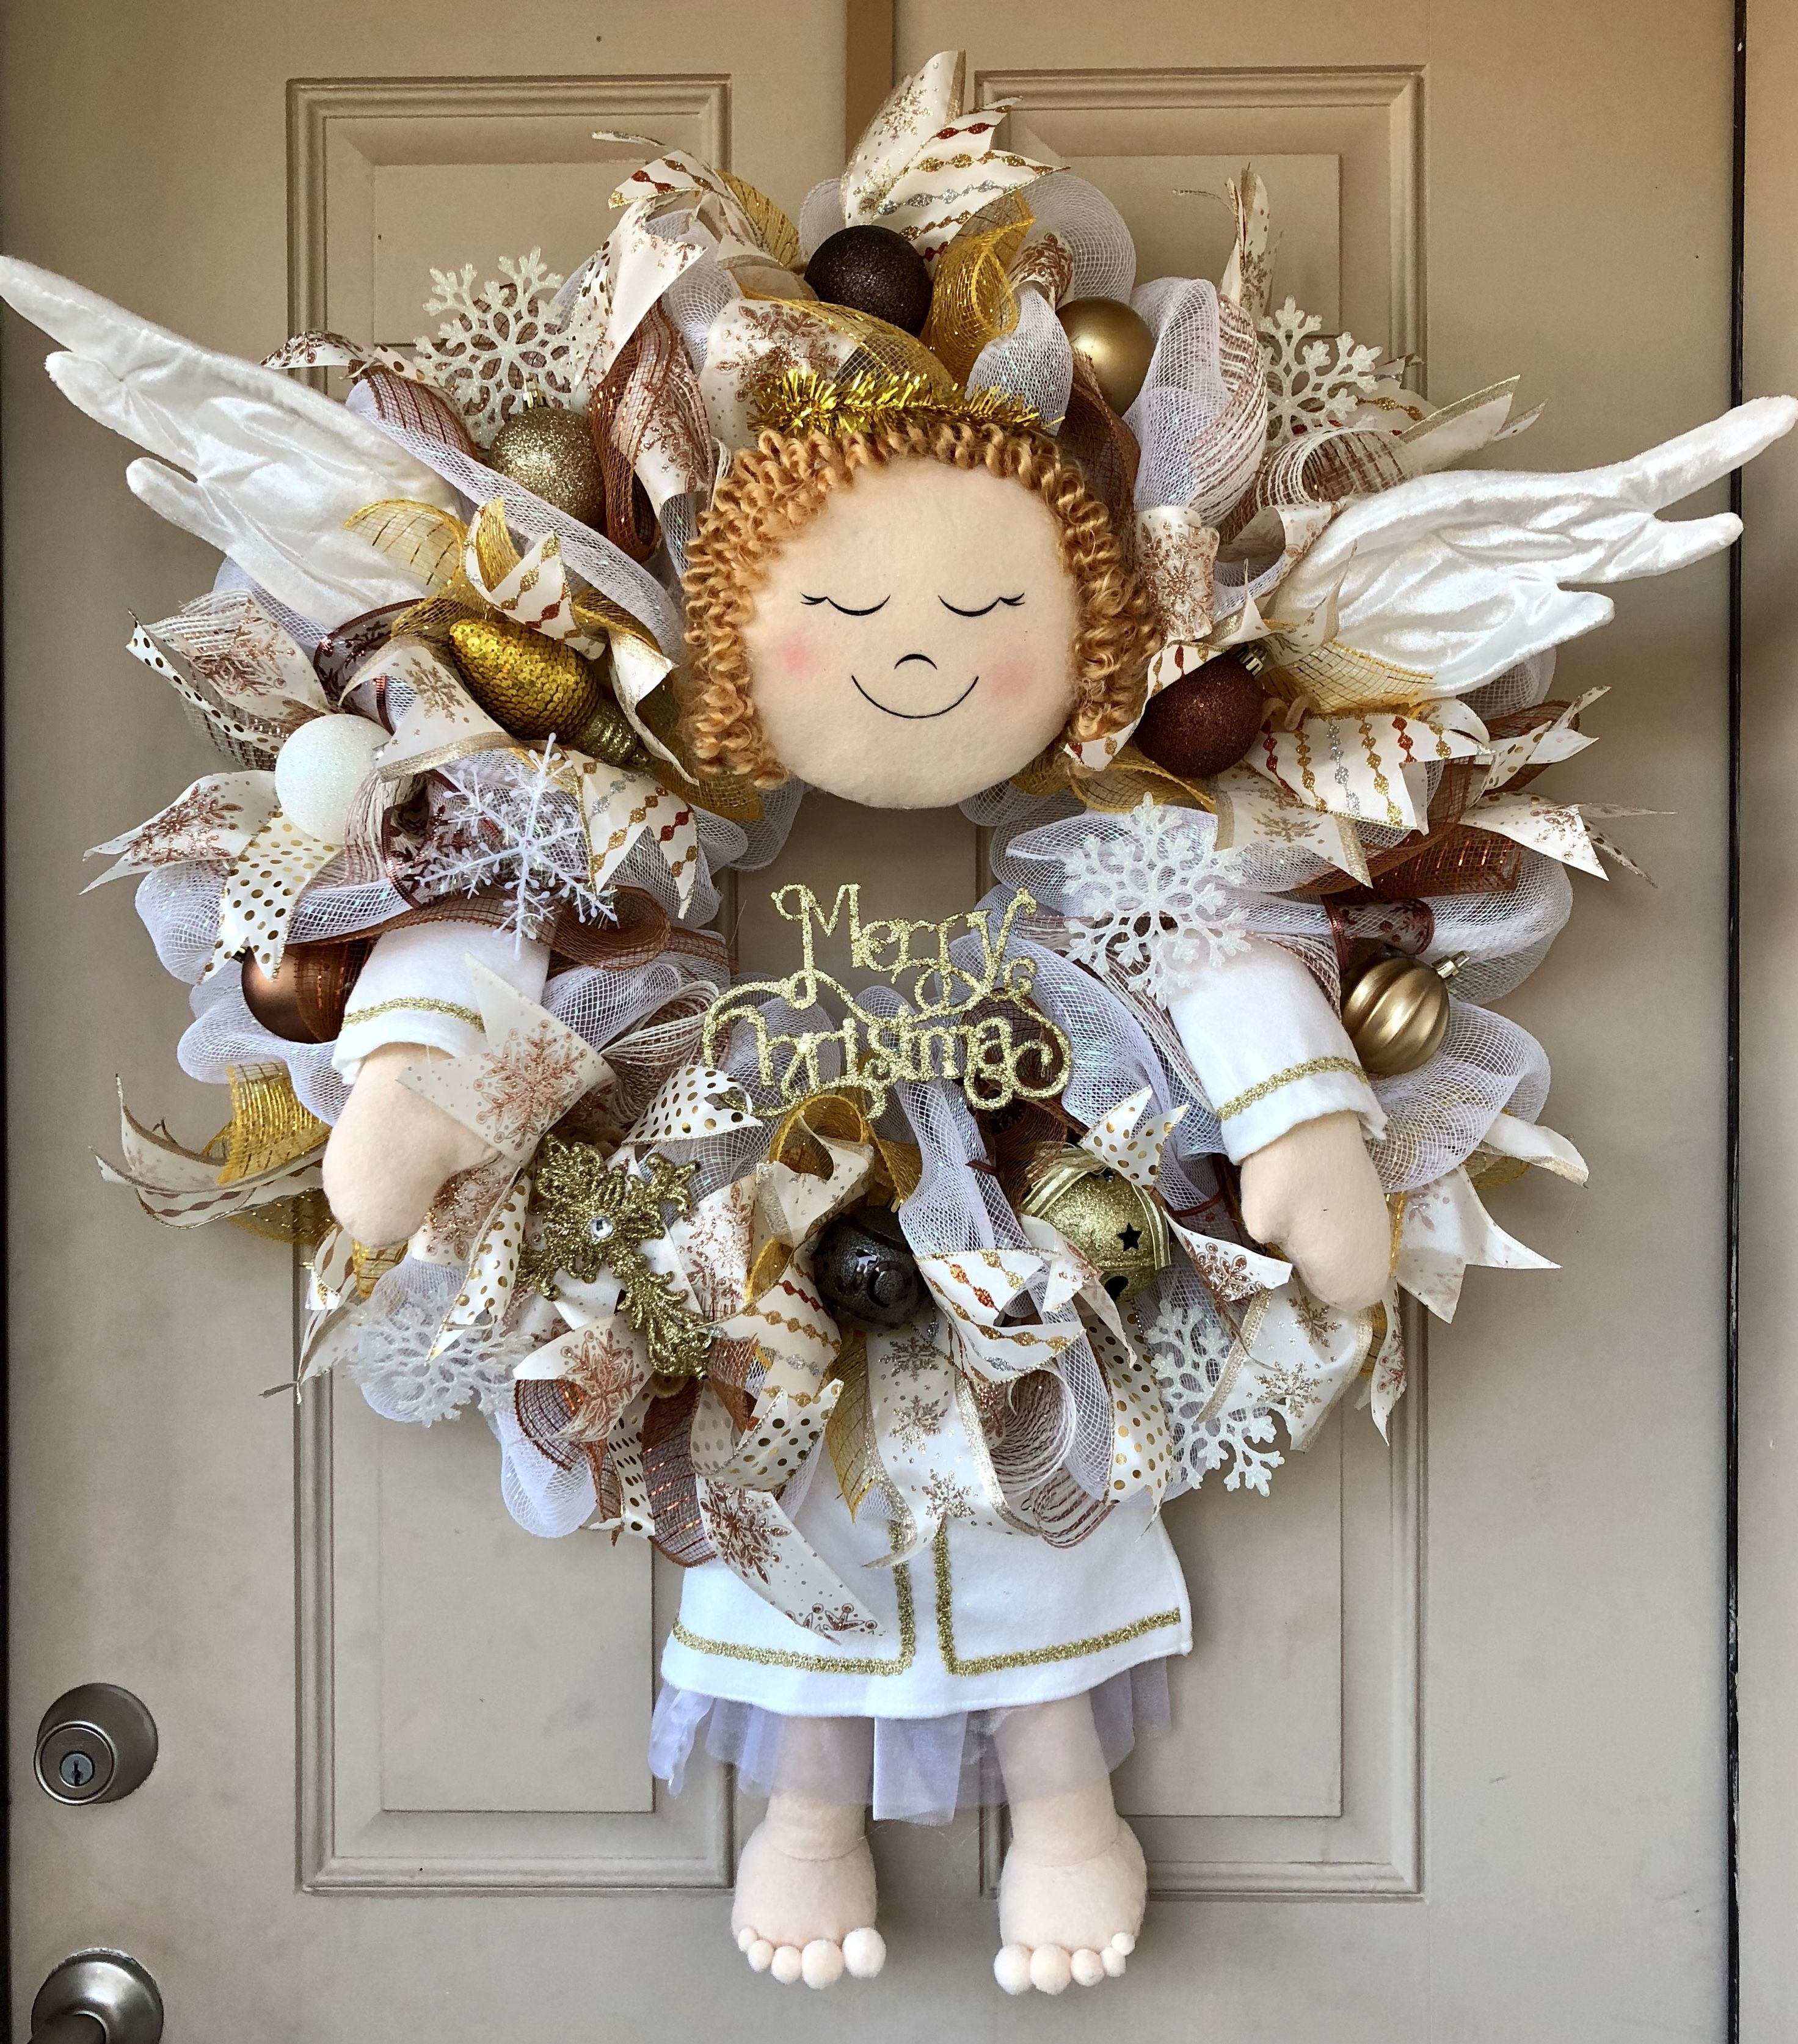 An Adorable Christmas Angel Wreath With Plush Head, Arms, Dangling